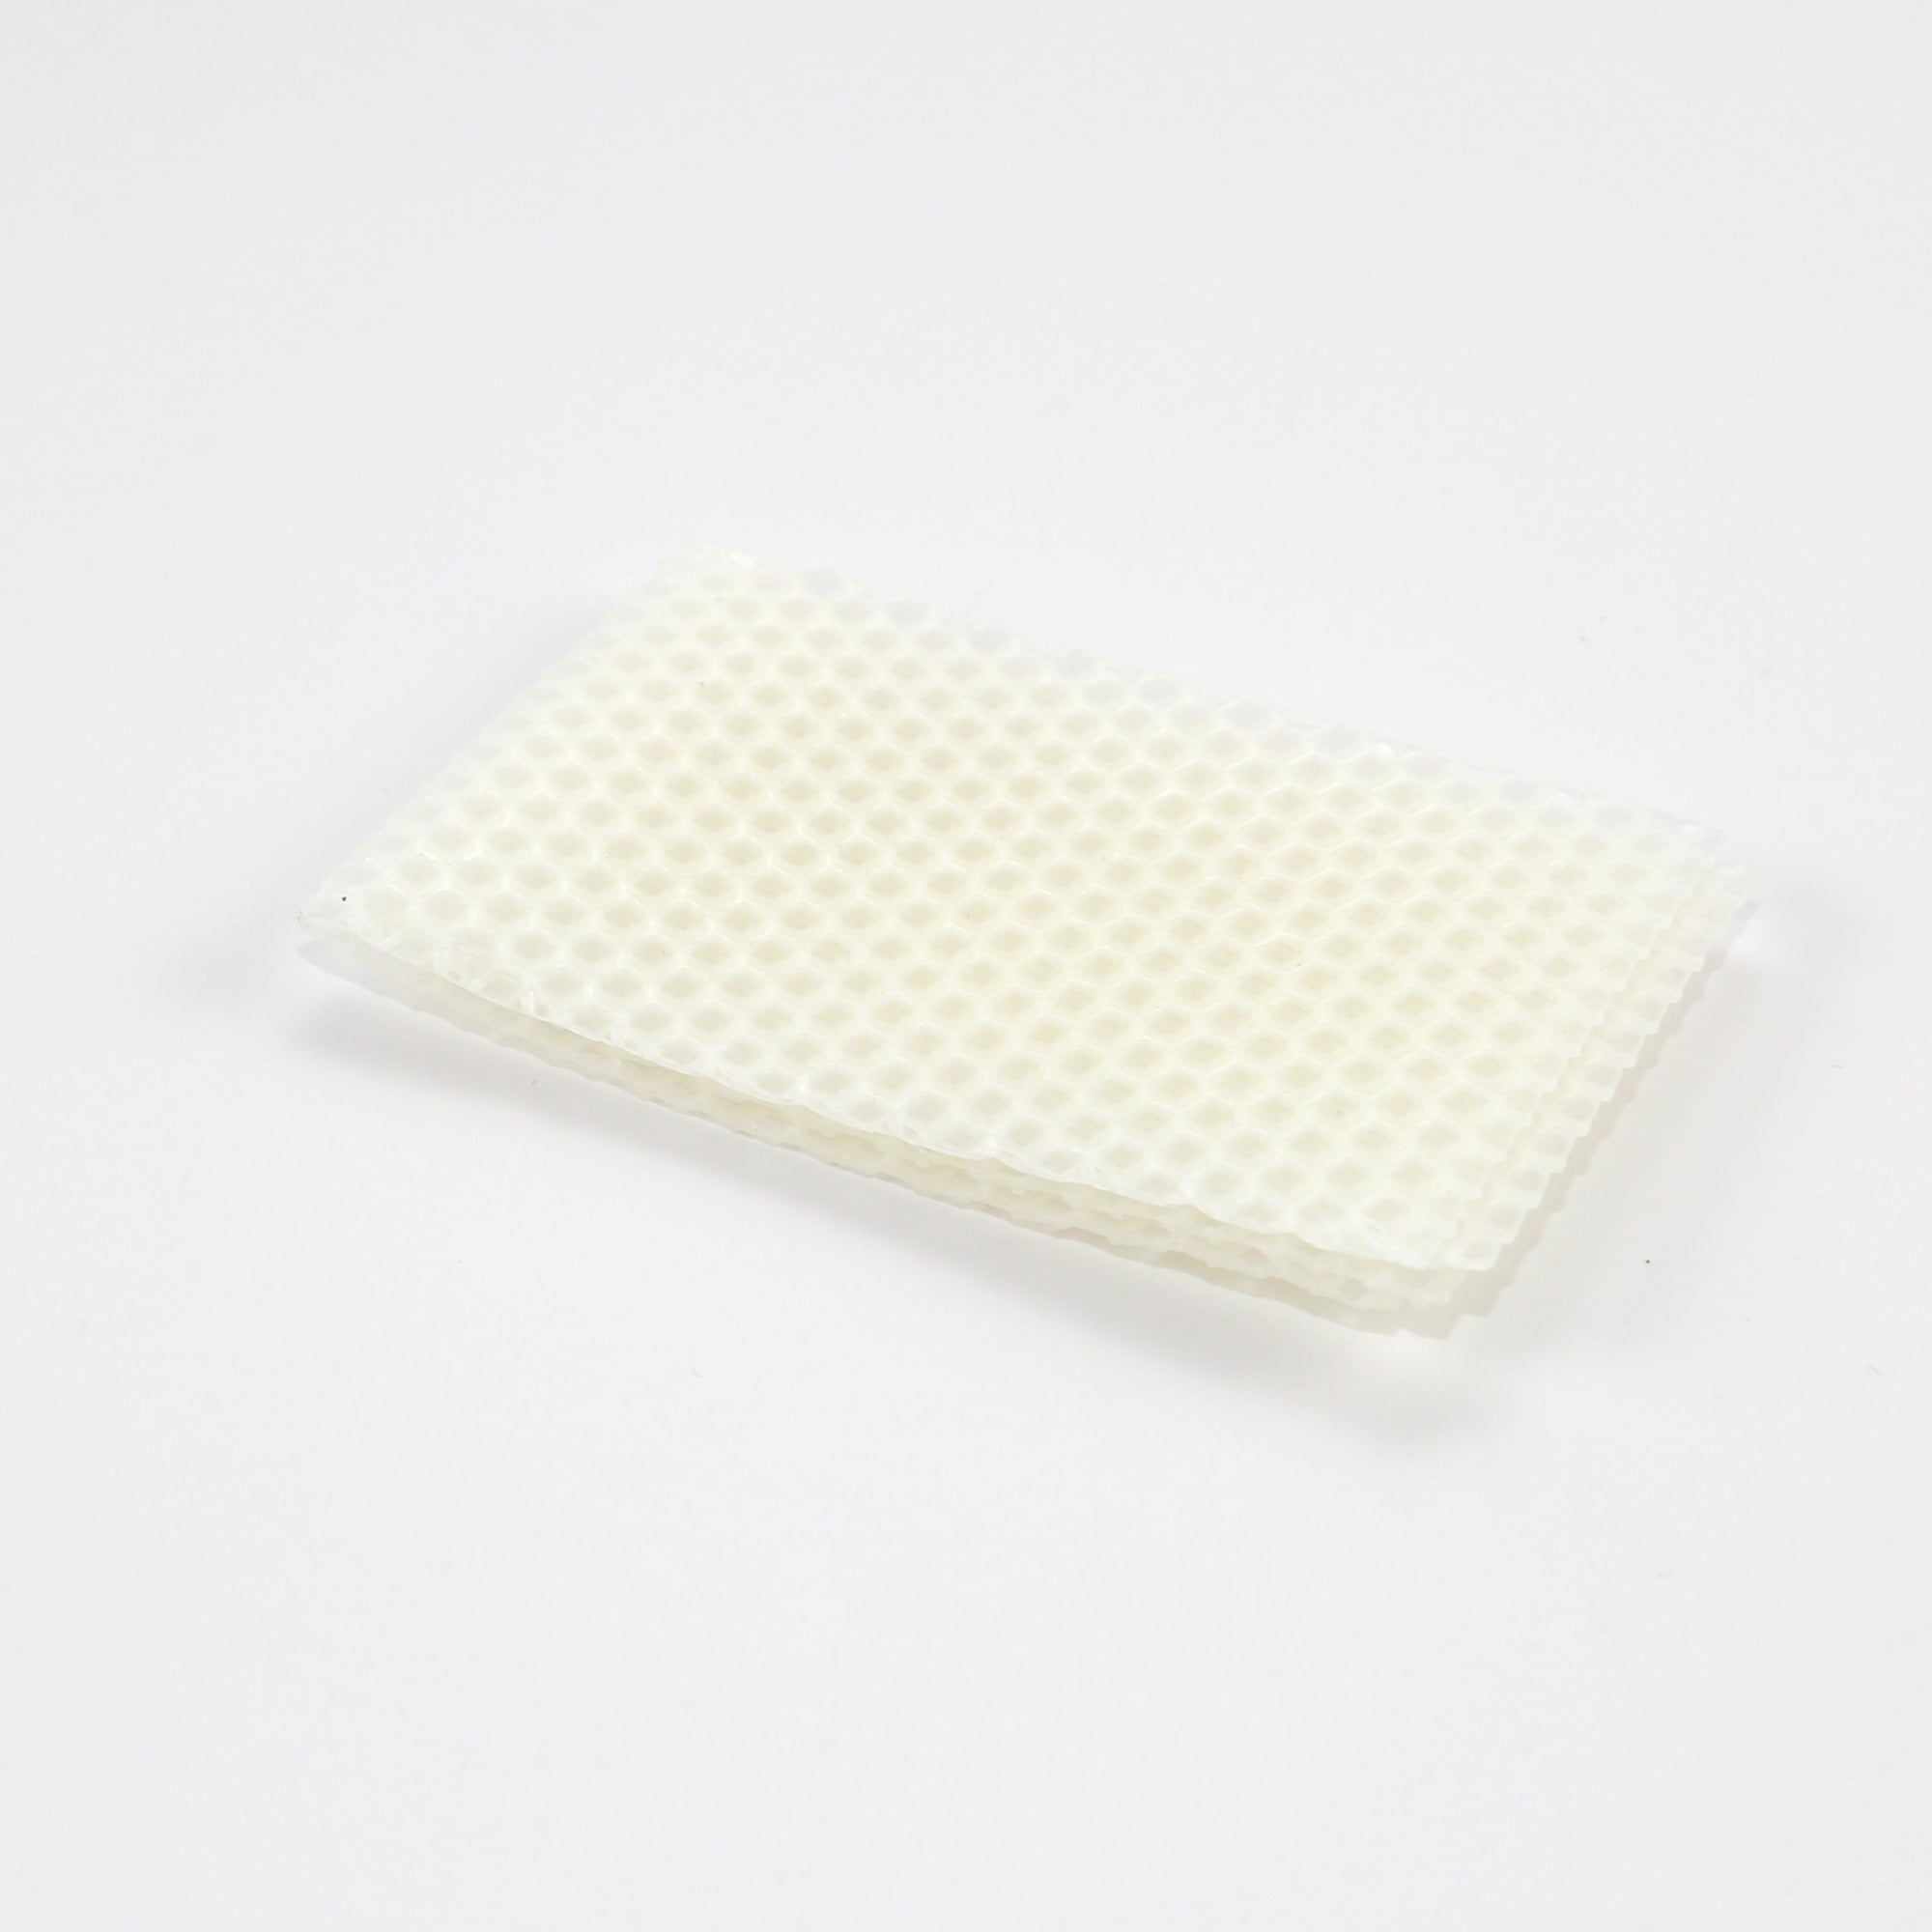 Beeswax Sheets- Cloud White Sheets 22g